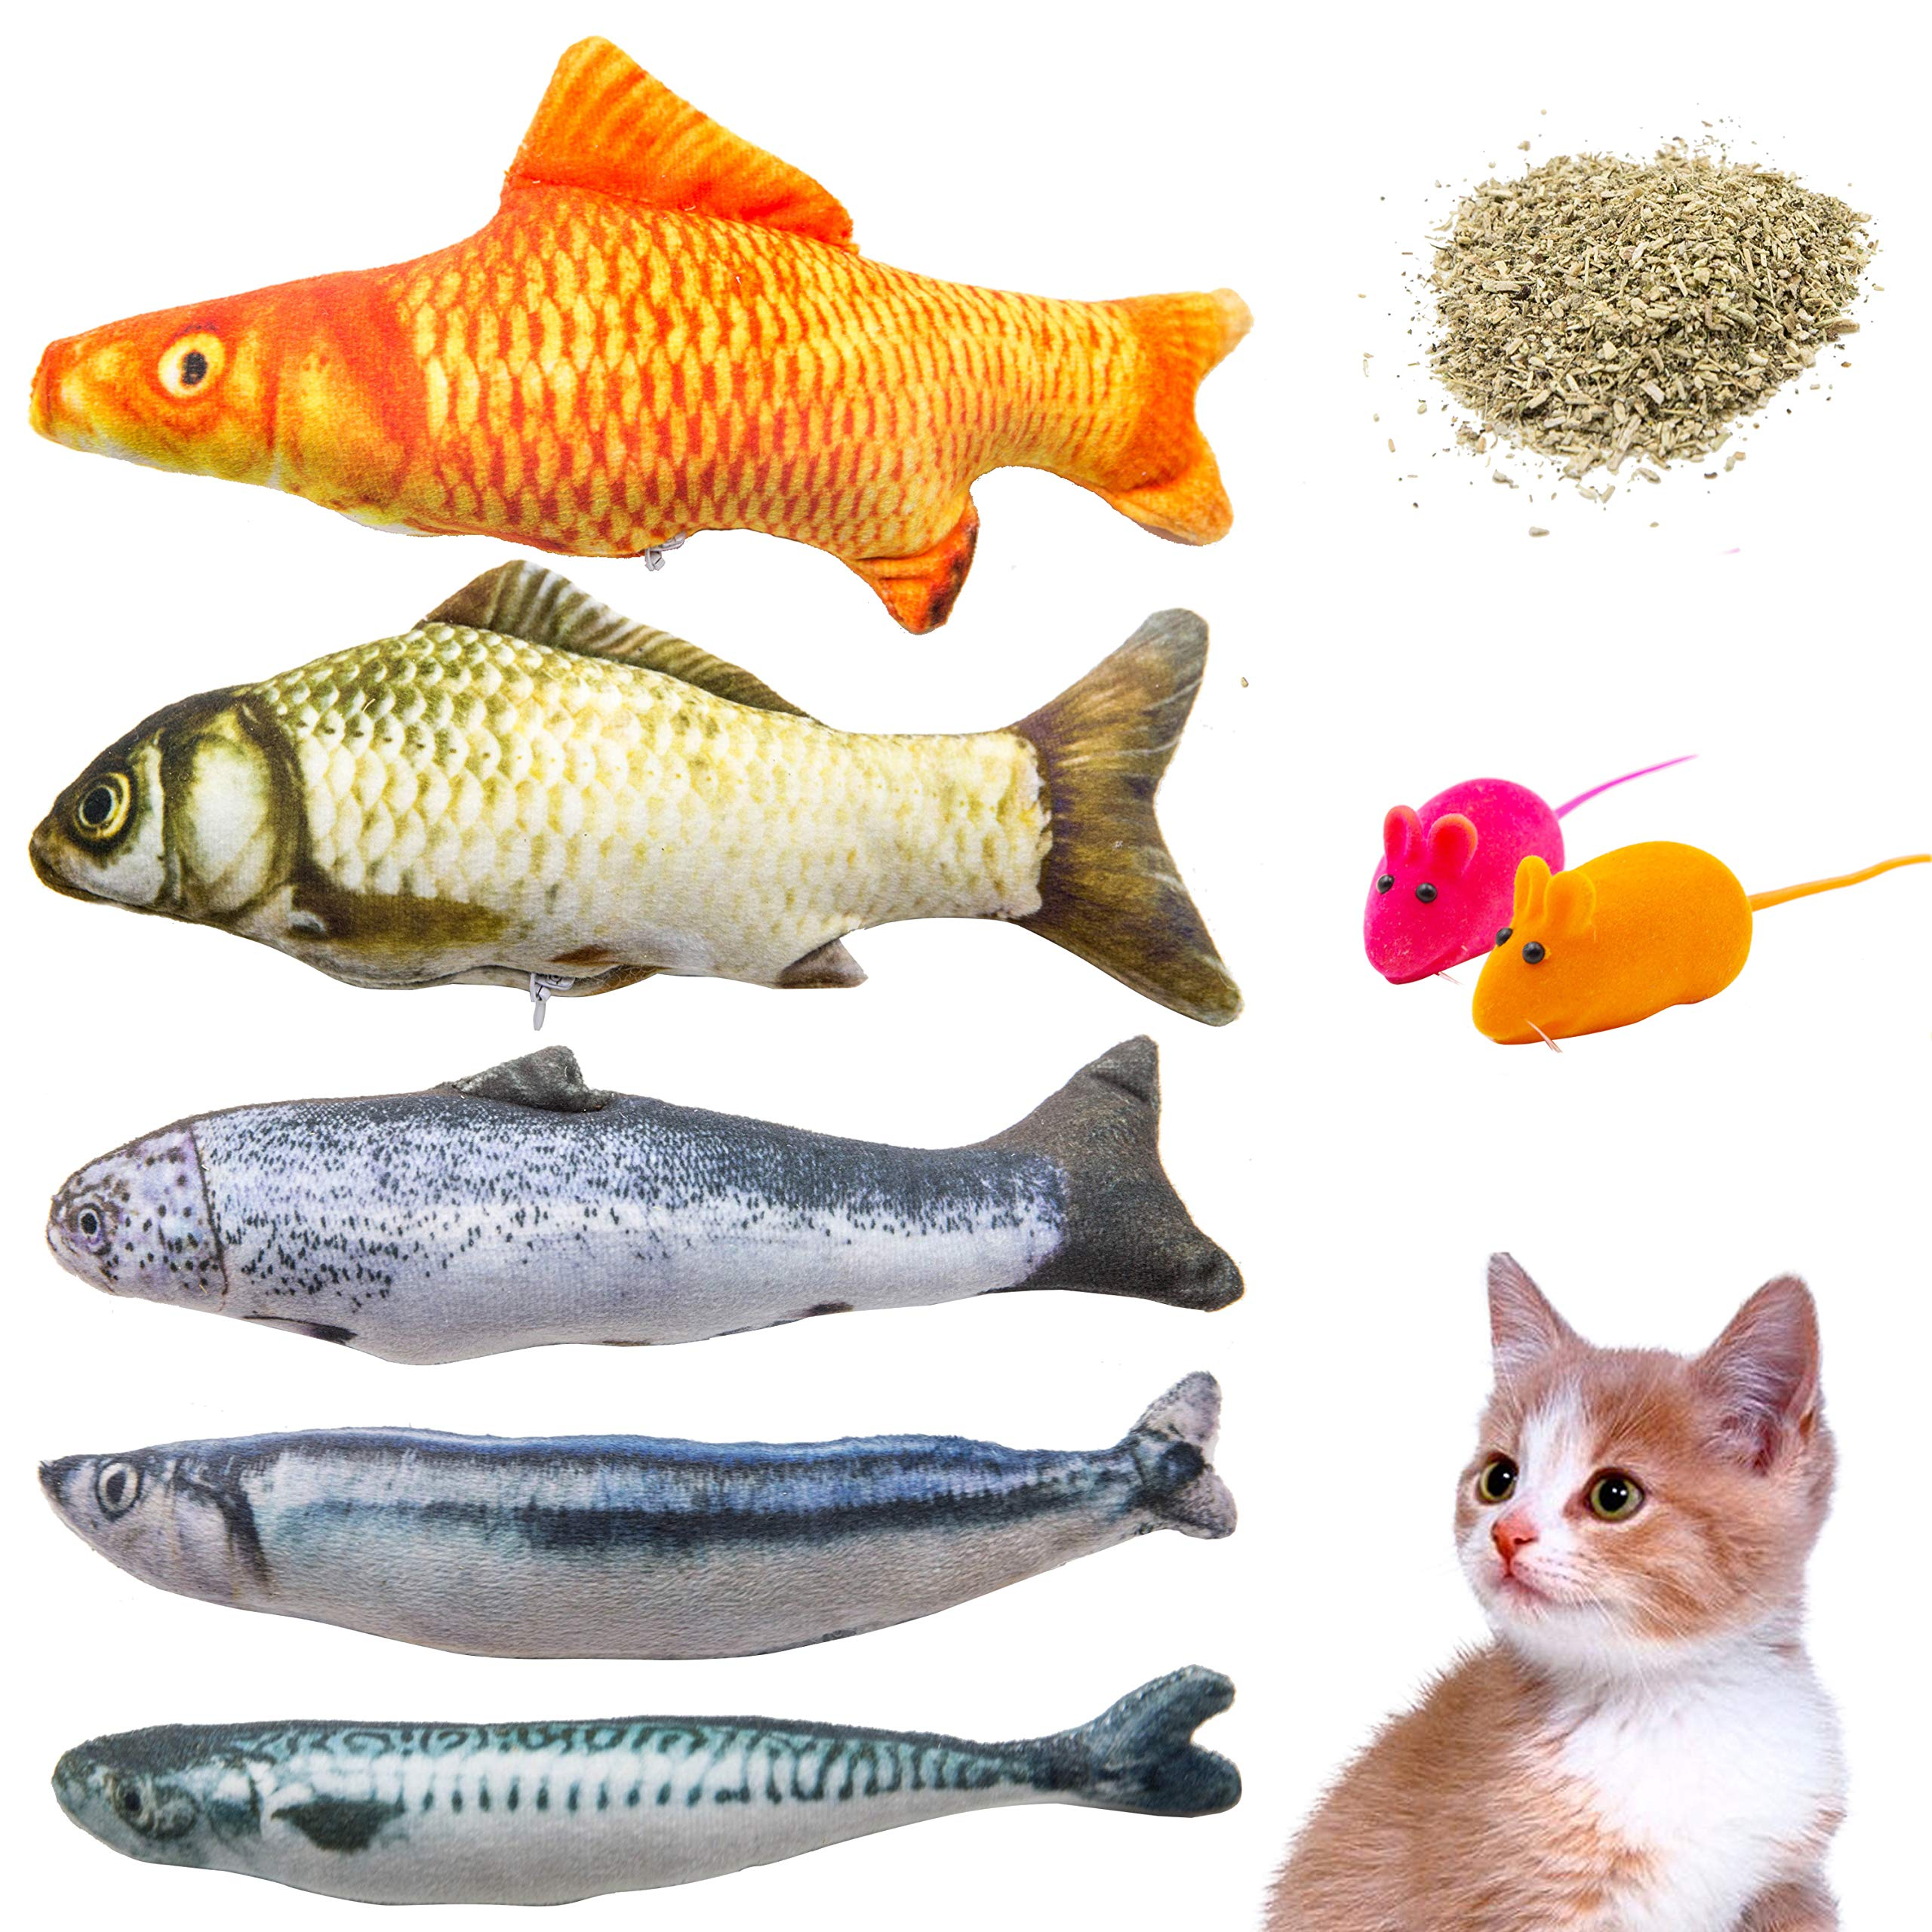 Youngever 7 Cat Toys Assortment 5 Refillable Catnip Fish Cat Toys 2 Free Squeaky Mouse Cat Toys, Free Extra Catnip Refill Cat, Puppy, Kitty, Kitten, Ferret, Rabbit